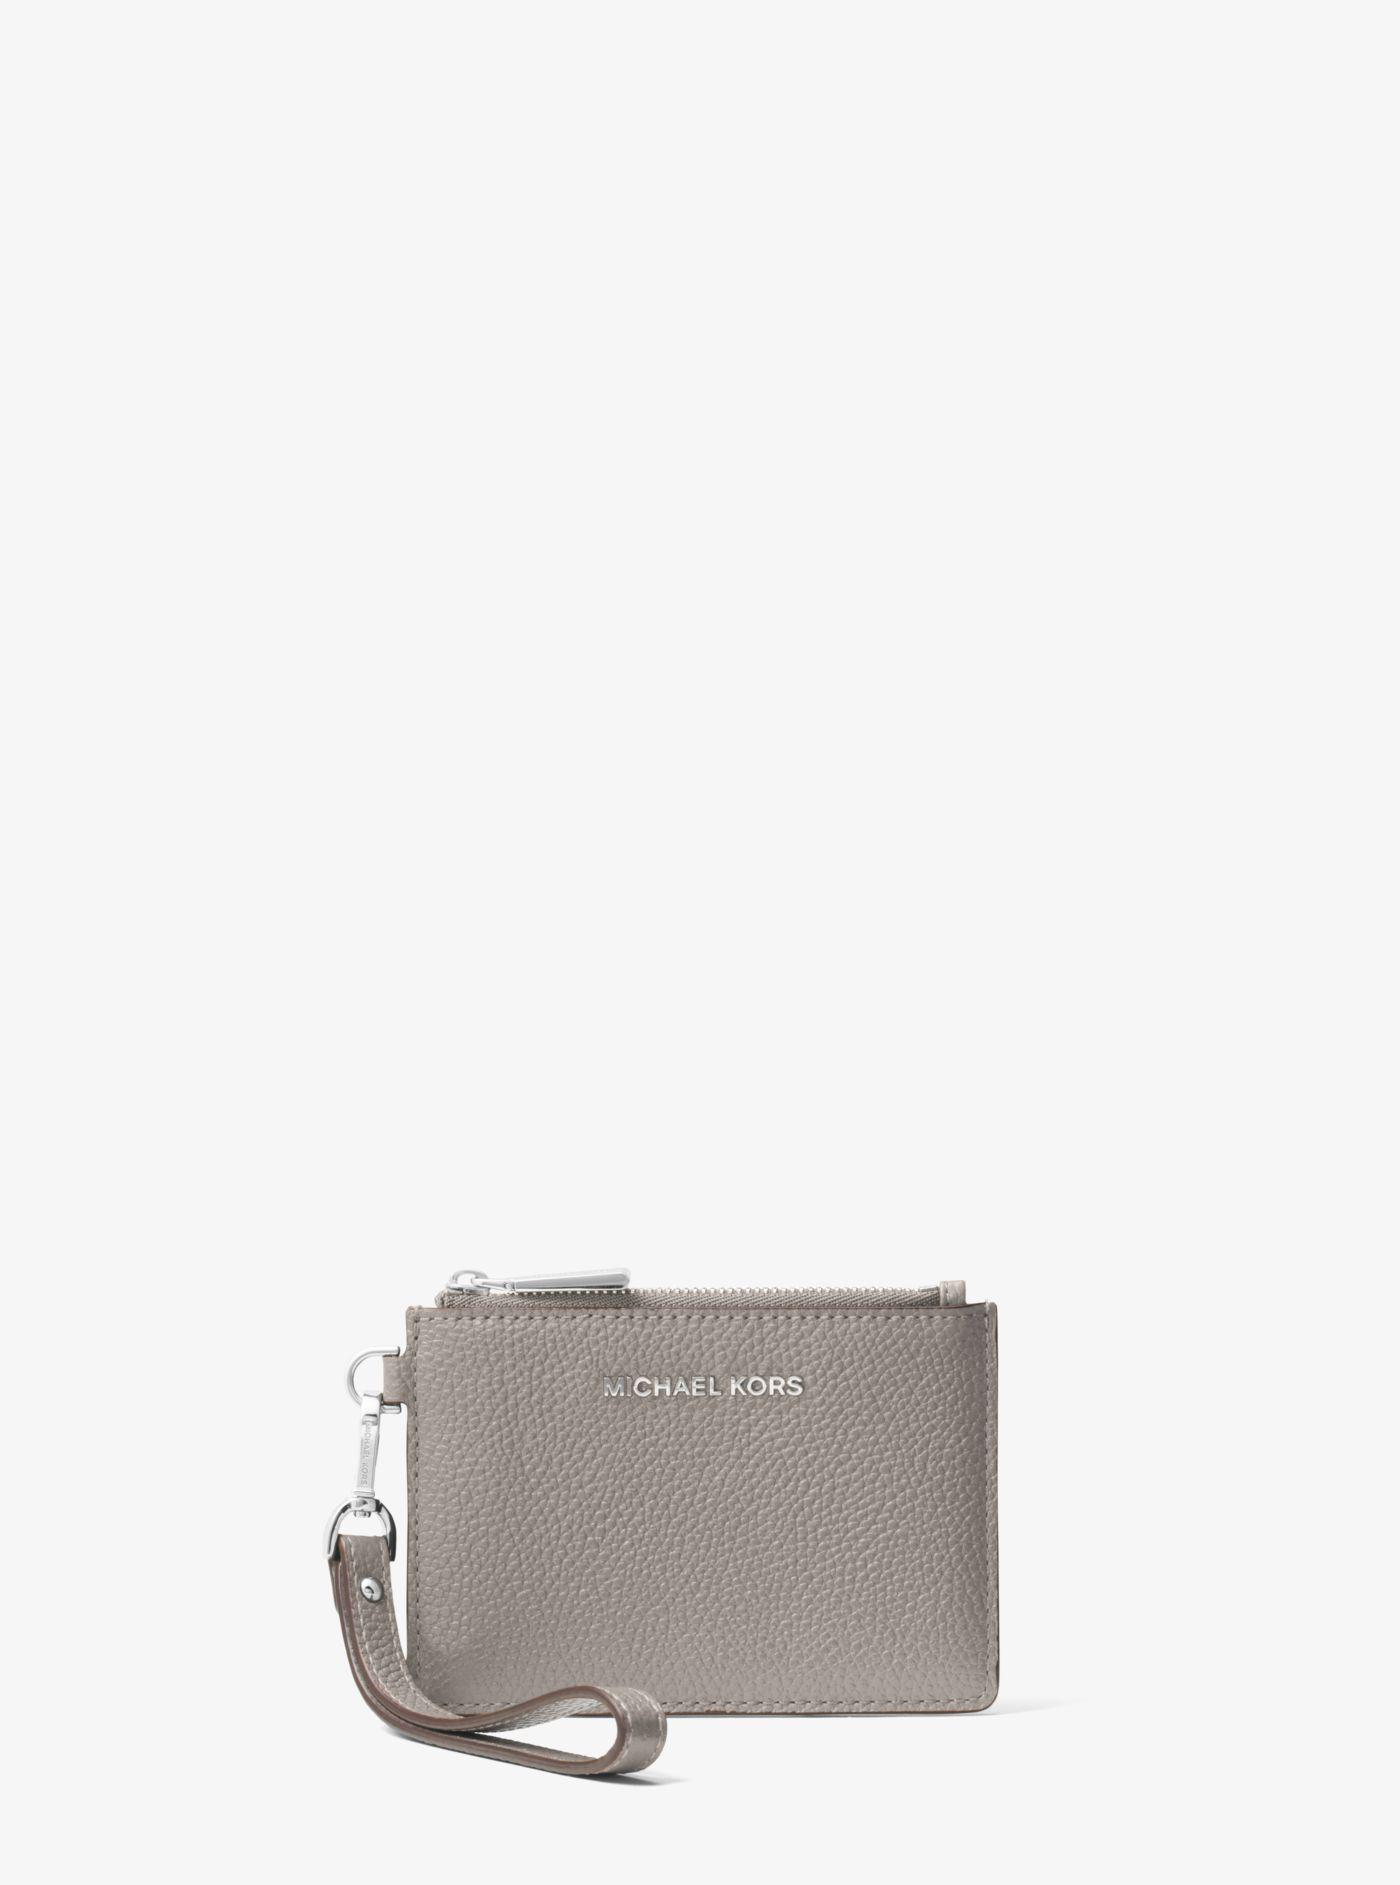 michael kors mercer small leather coin purse in gray lyst. Black Bedroom Furniture Sets. Home Design Ideas